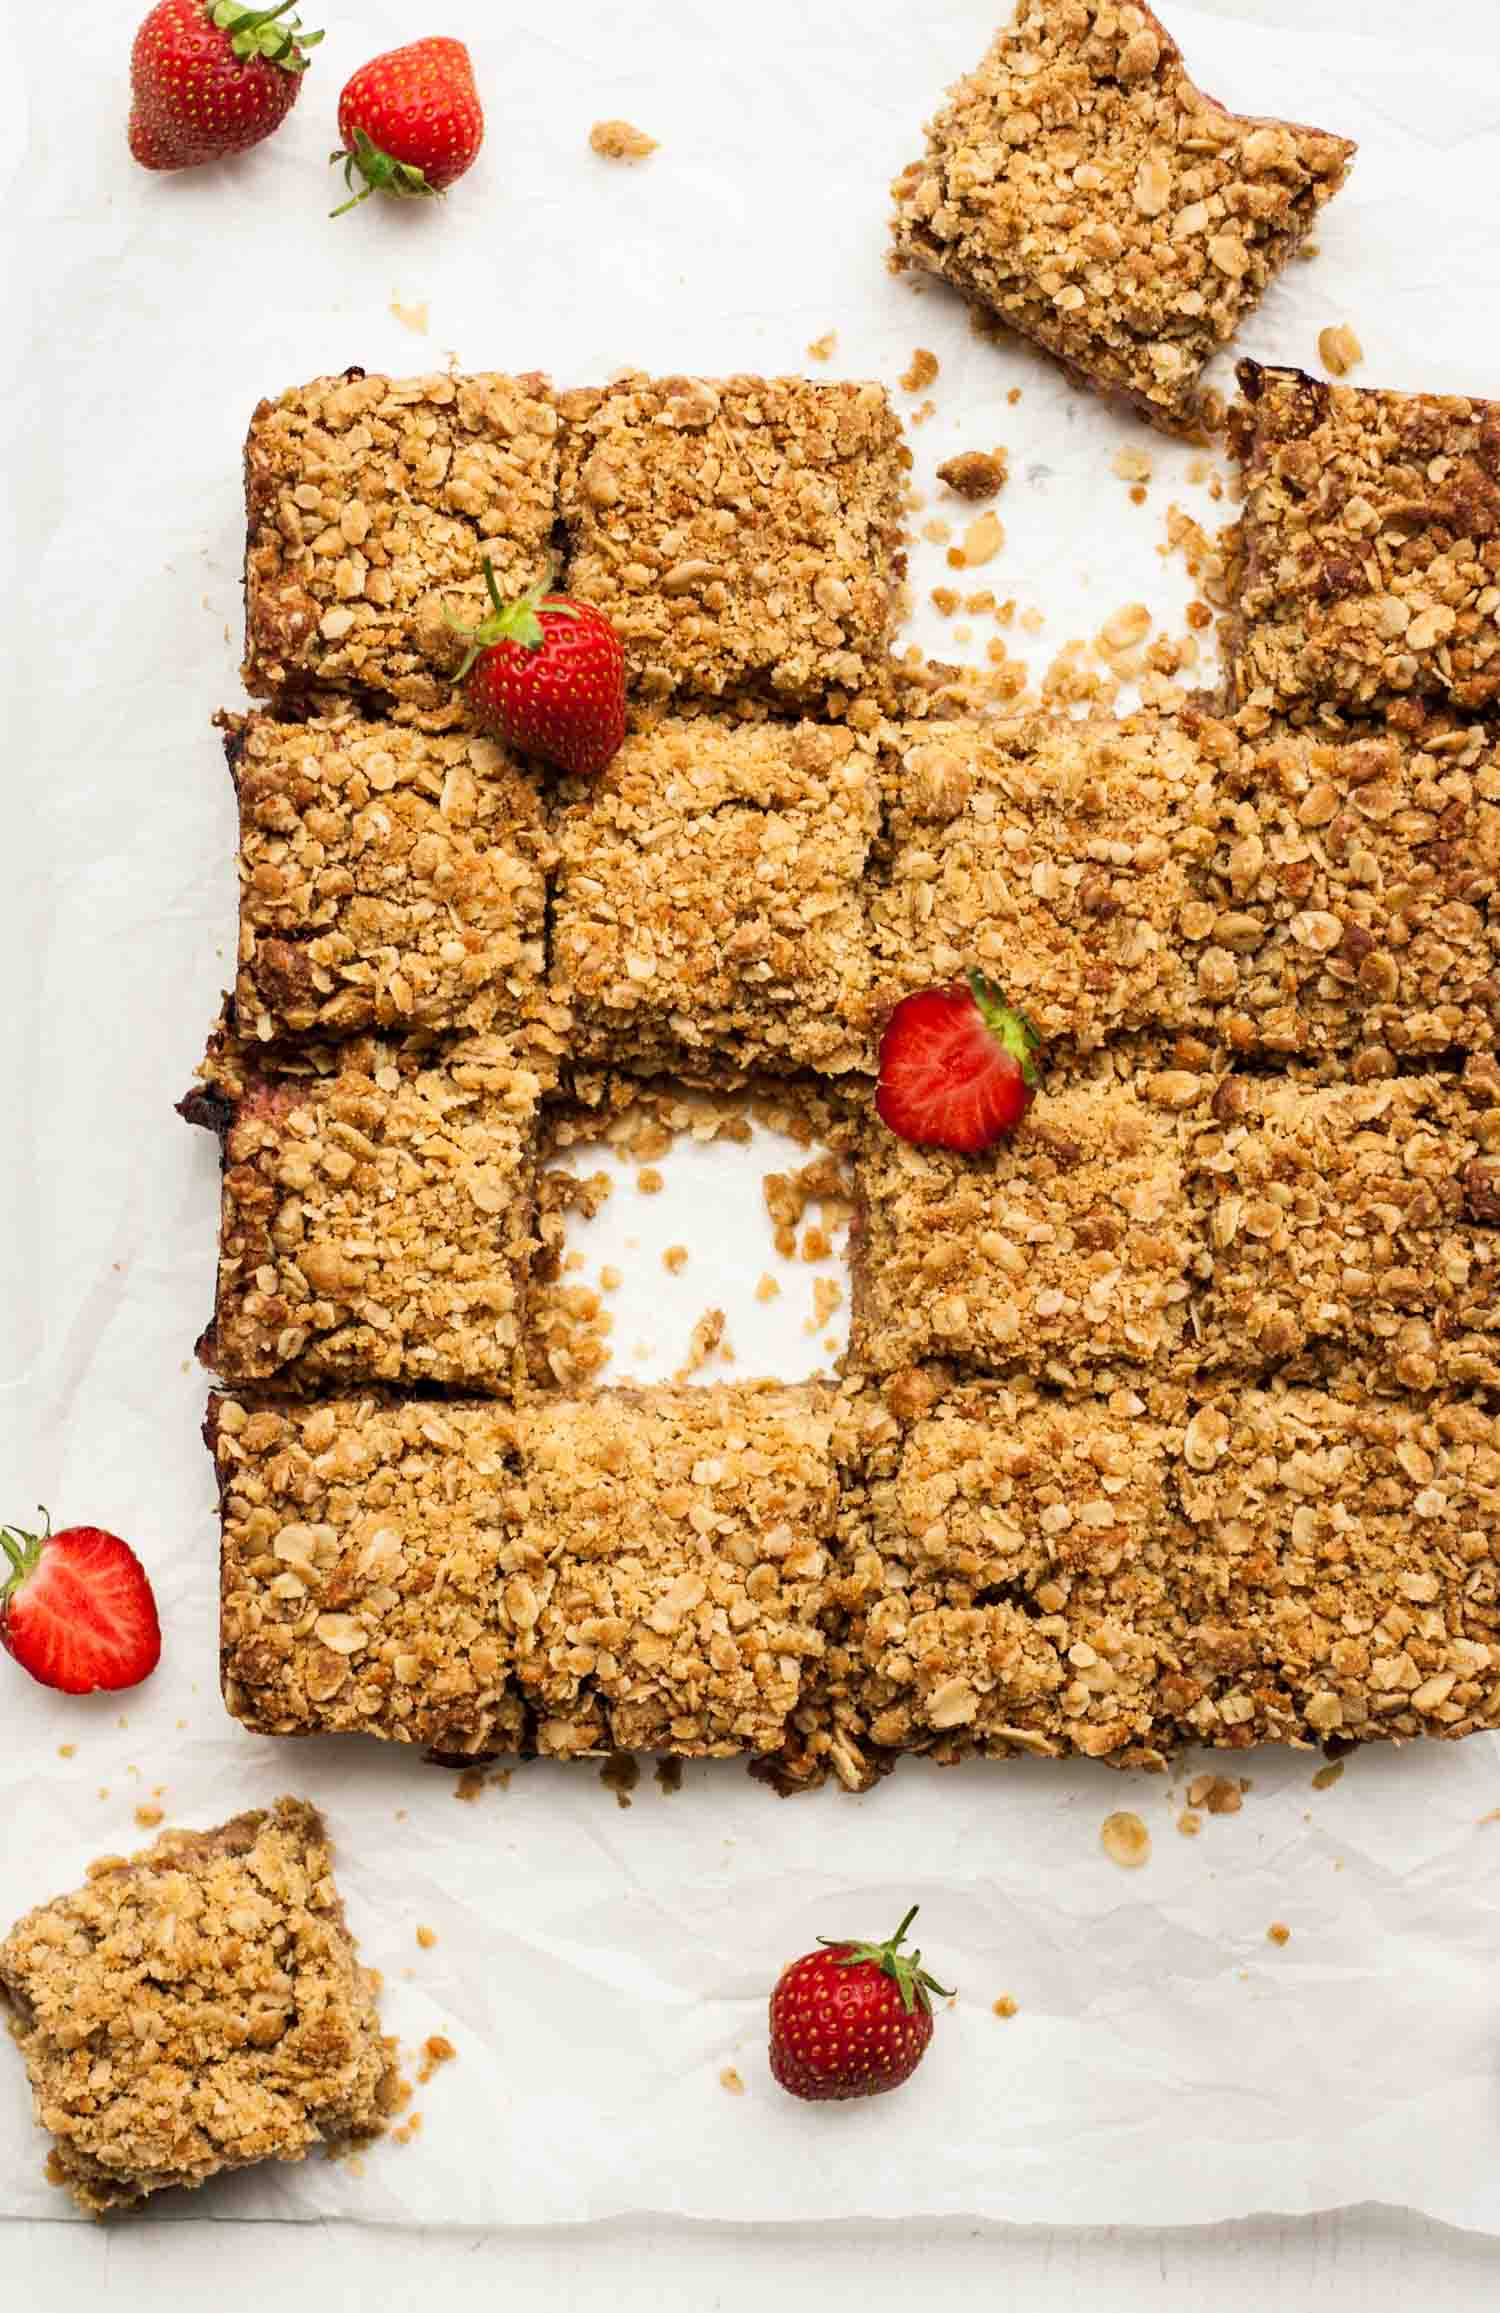 Strawberry Rhubarb Brown Butter Oatmeal Bars - these gooey oatmeal bars are quick and easy to make and are totally addictive!   eatloveeats.com